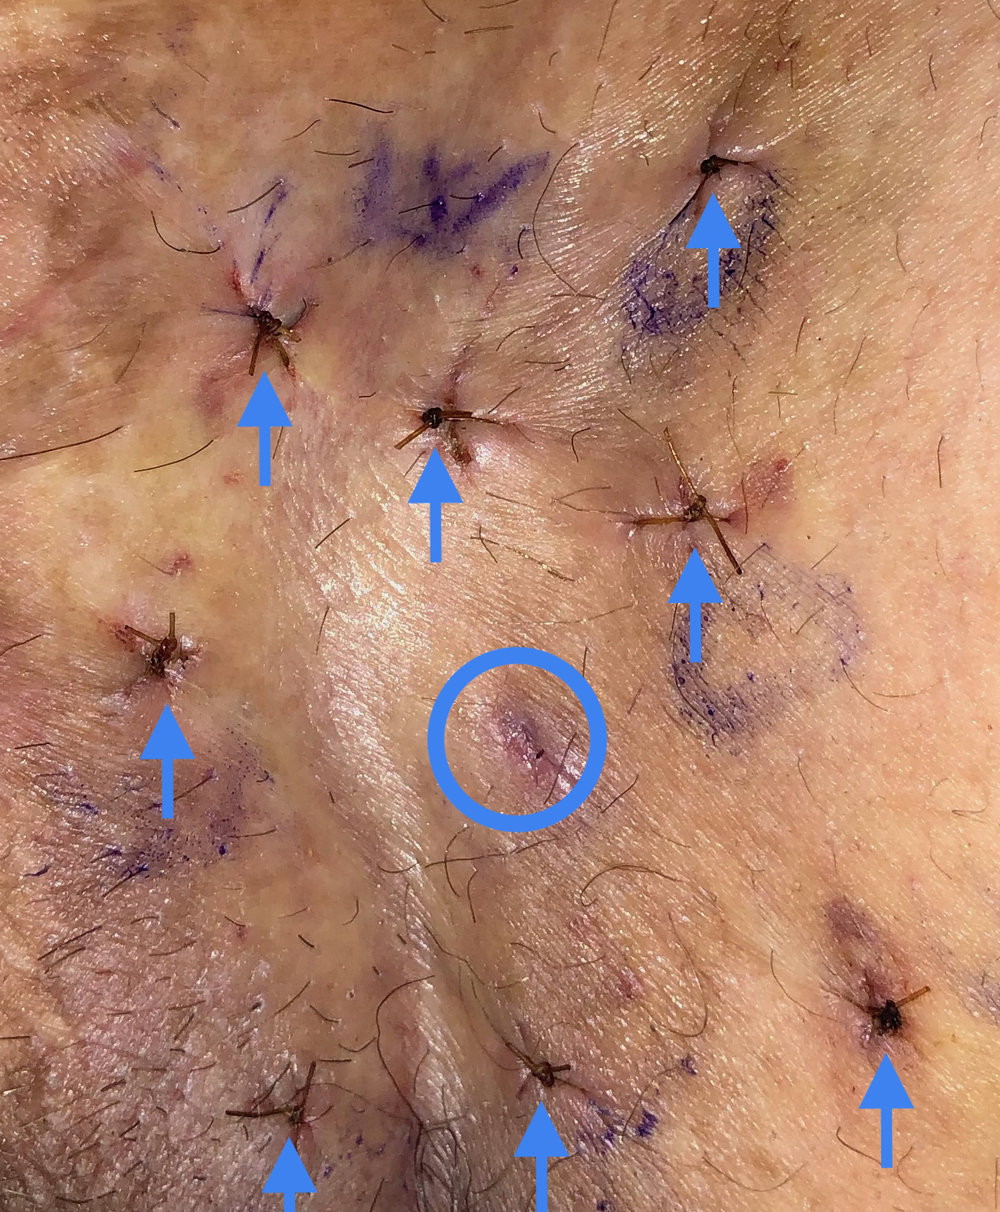 When extramammary Paget's disease (EMPD) is located in one area (as noted by the blue circle), scoutingbiopsies will often be used (as noted with the blue arrows), to help determine whether the EMPD covers a larger area. A stitch is frequently used to close each biopsy incision.